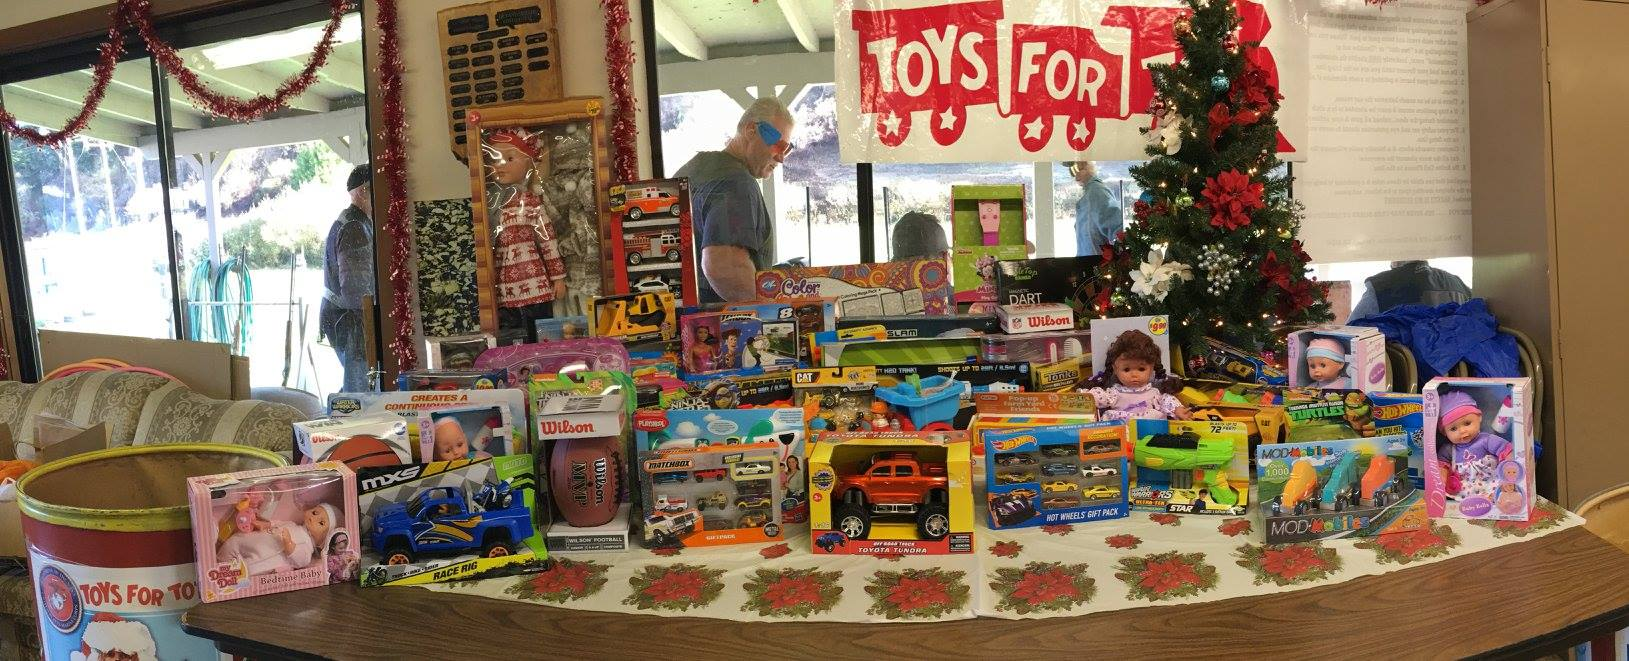 Eel River Toys For Tots